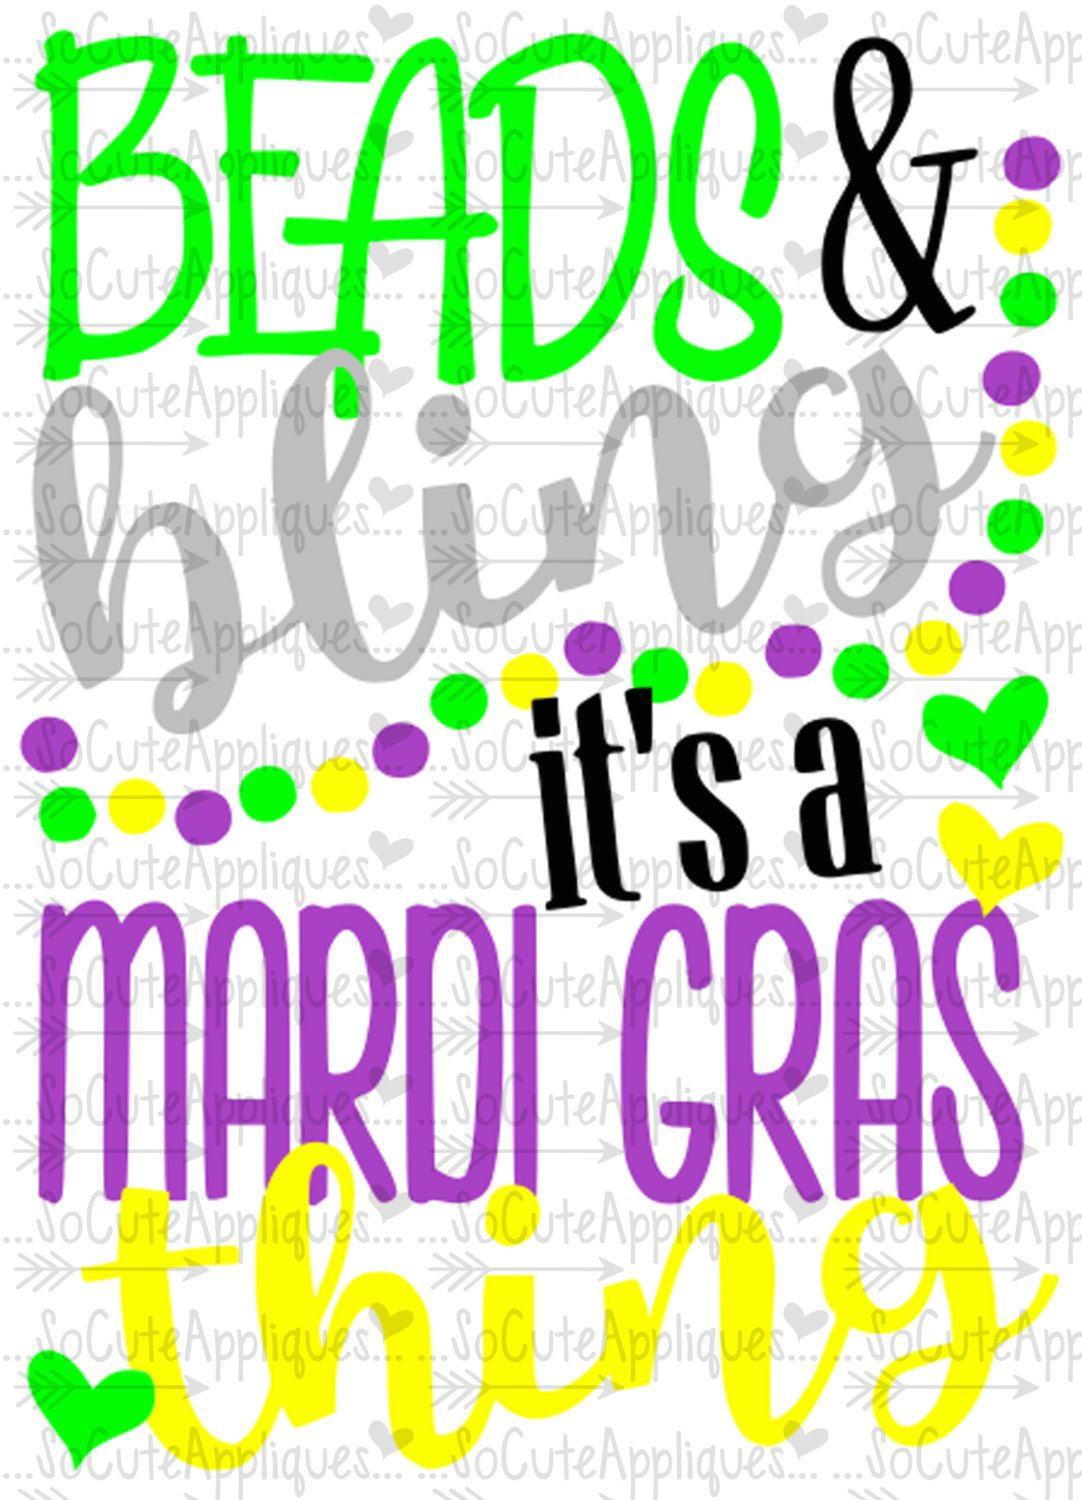 Scrapbook ideas new orleans - Mardi Gras Svg Beads And Bling Cut File Socuteappliques Fat Tuesday Svg Silhouette Cut File Cameo File Scrapbook File Nola Bead Svg